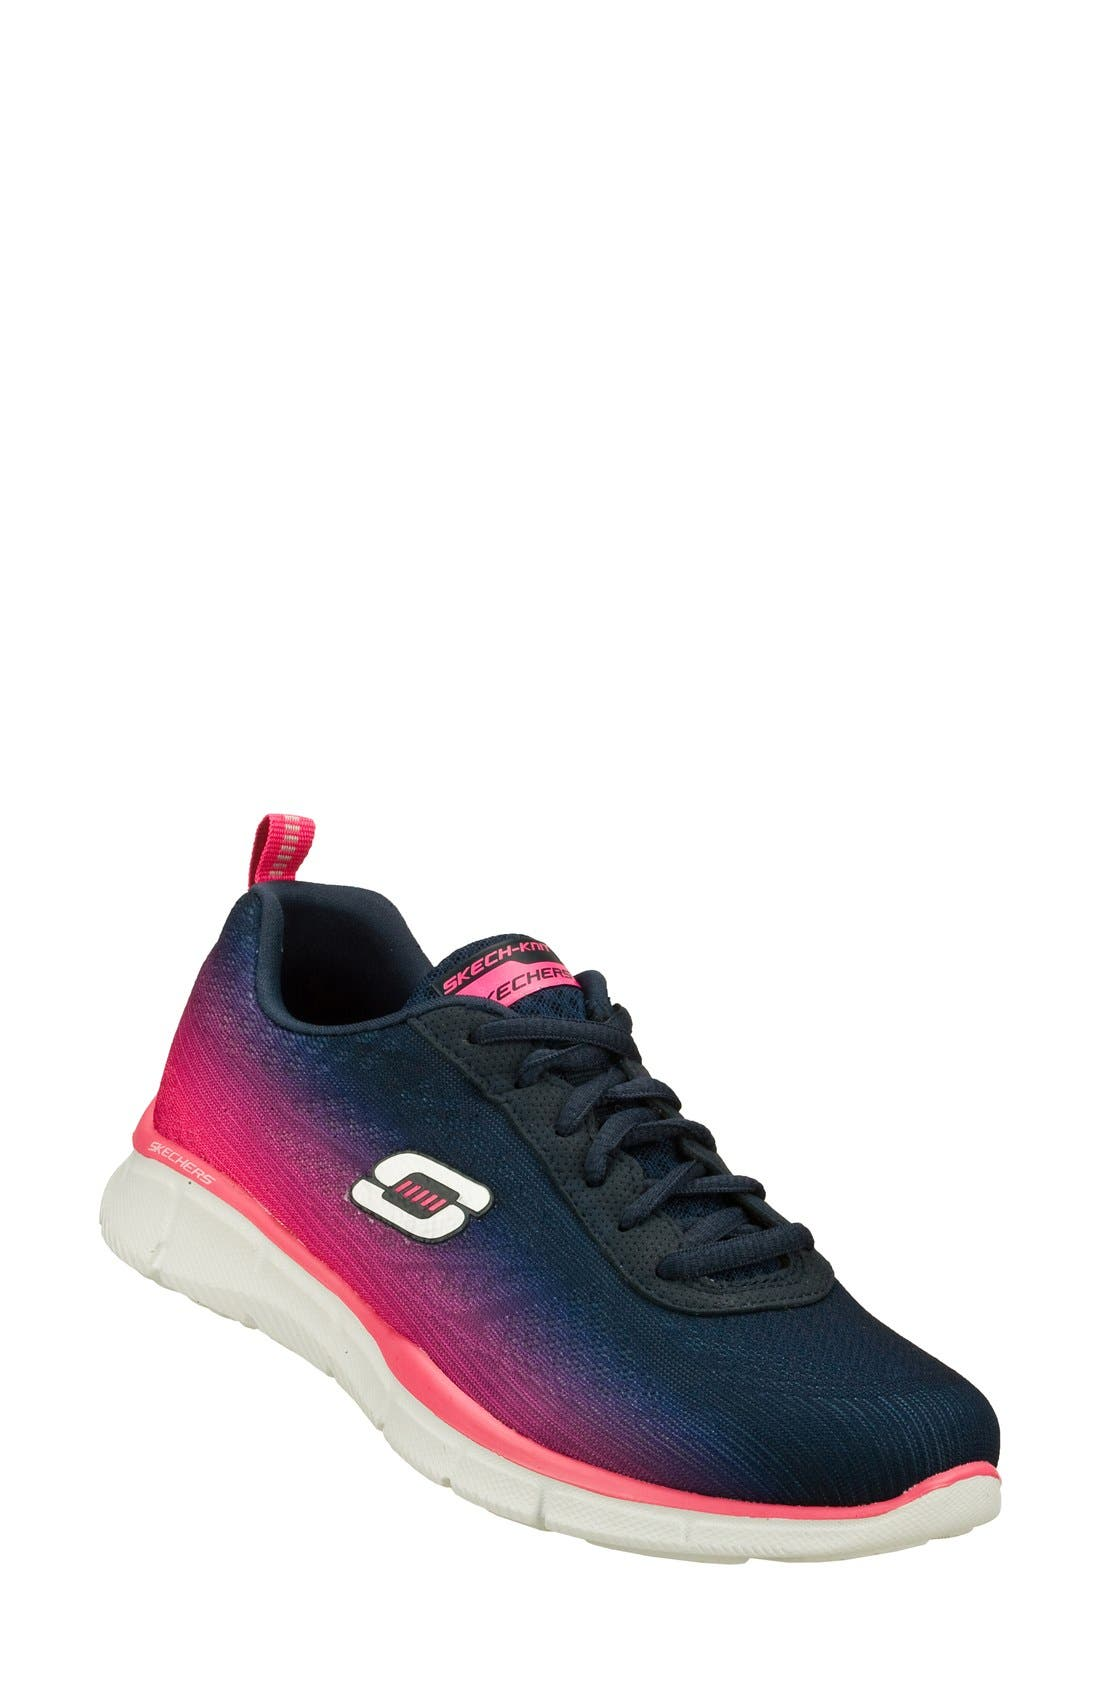 Main Image - SKECHERS 'Perfect Pair' Walking Shoe (Women)